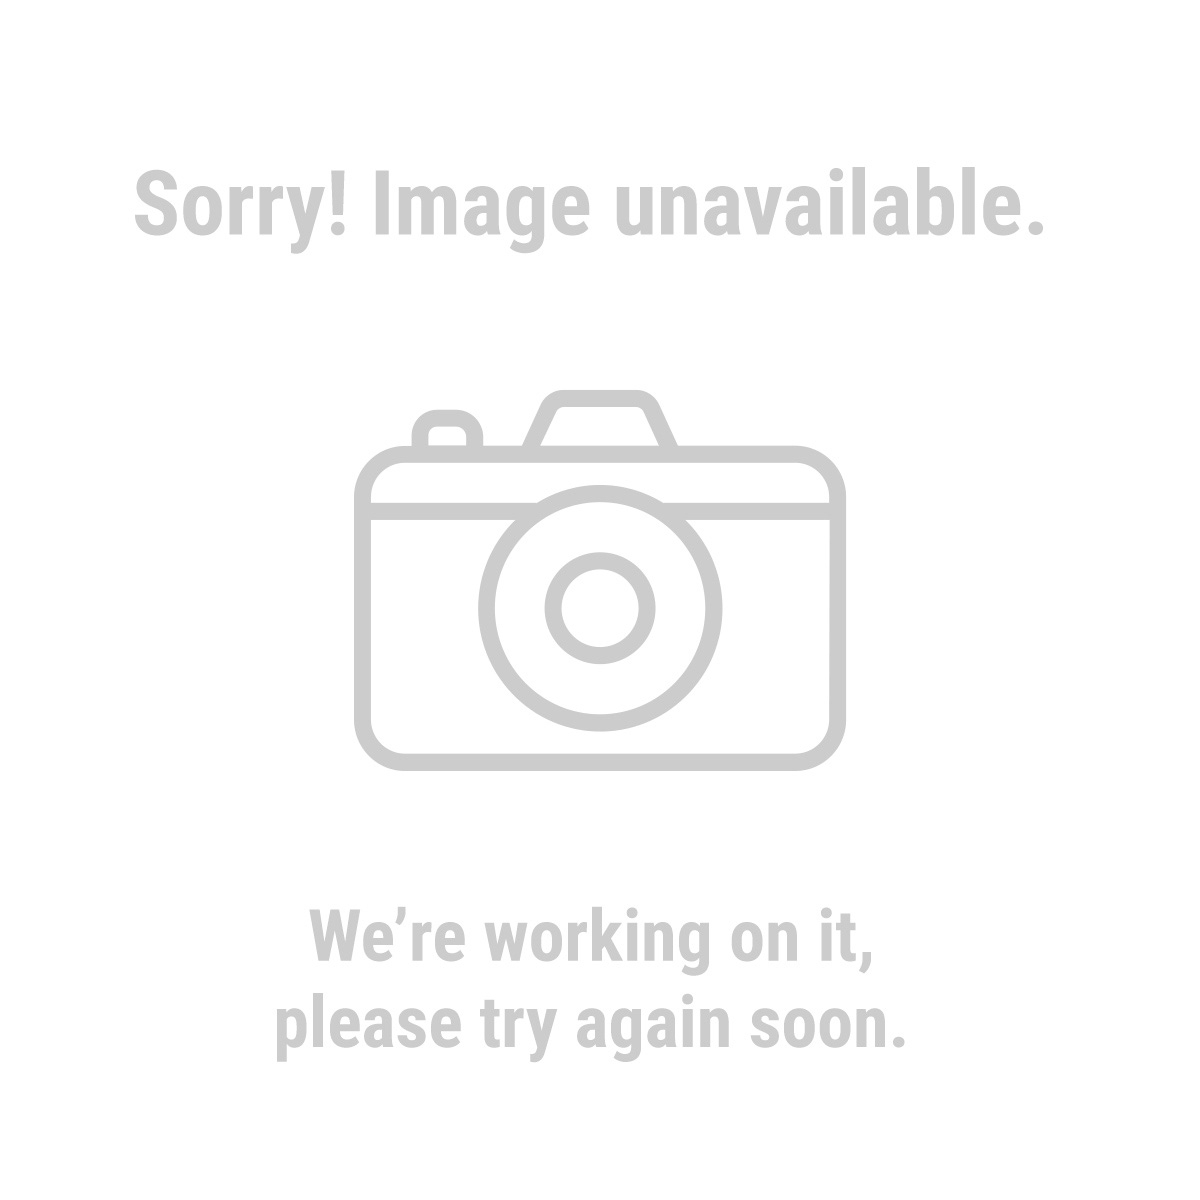 HARDY 95542 Leather Mechanic's Gloves, X-Large